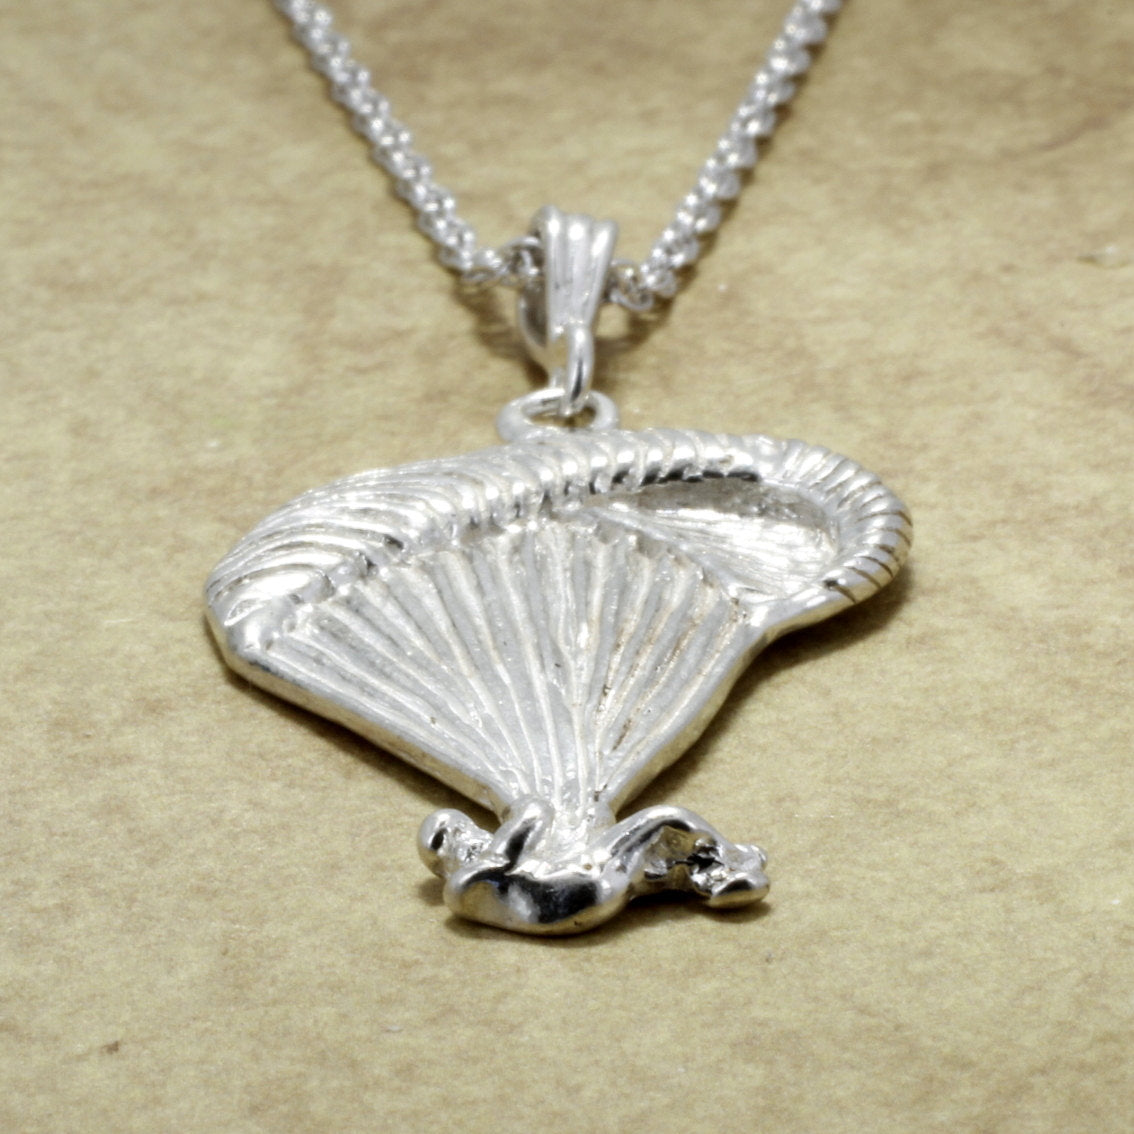 Paraglider Necklace, 925 Sterling Silver Paraglider Necklace with 18